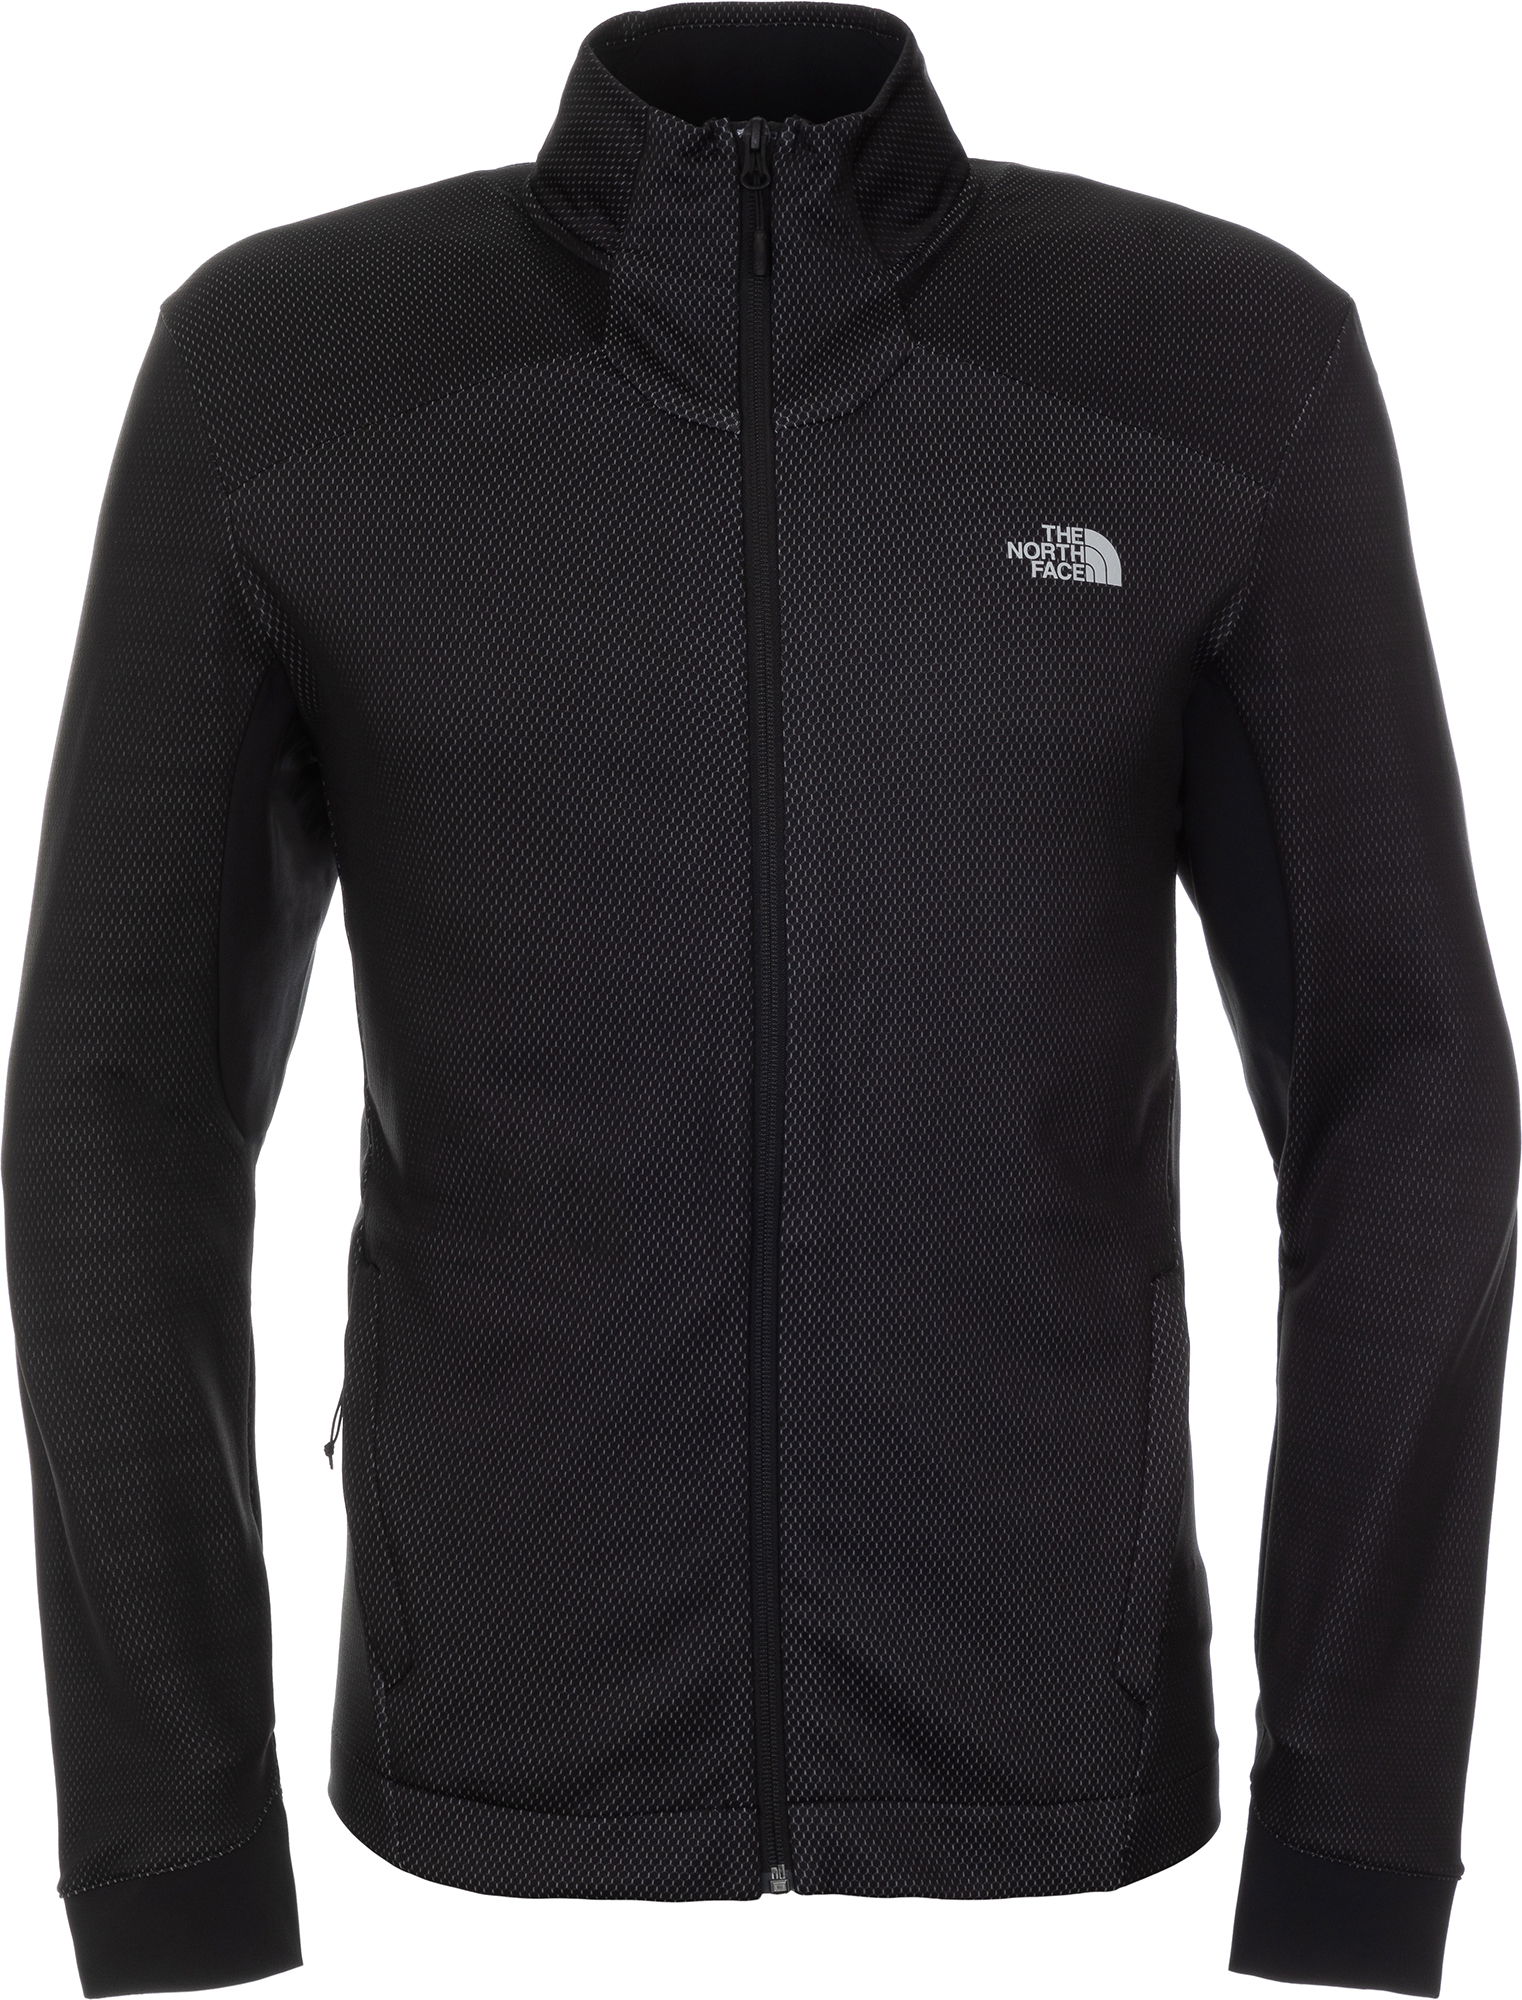 The North Face Джемпер мужской The North Face Apex Midlayer, размер 52 цена и фото